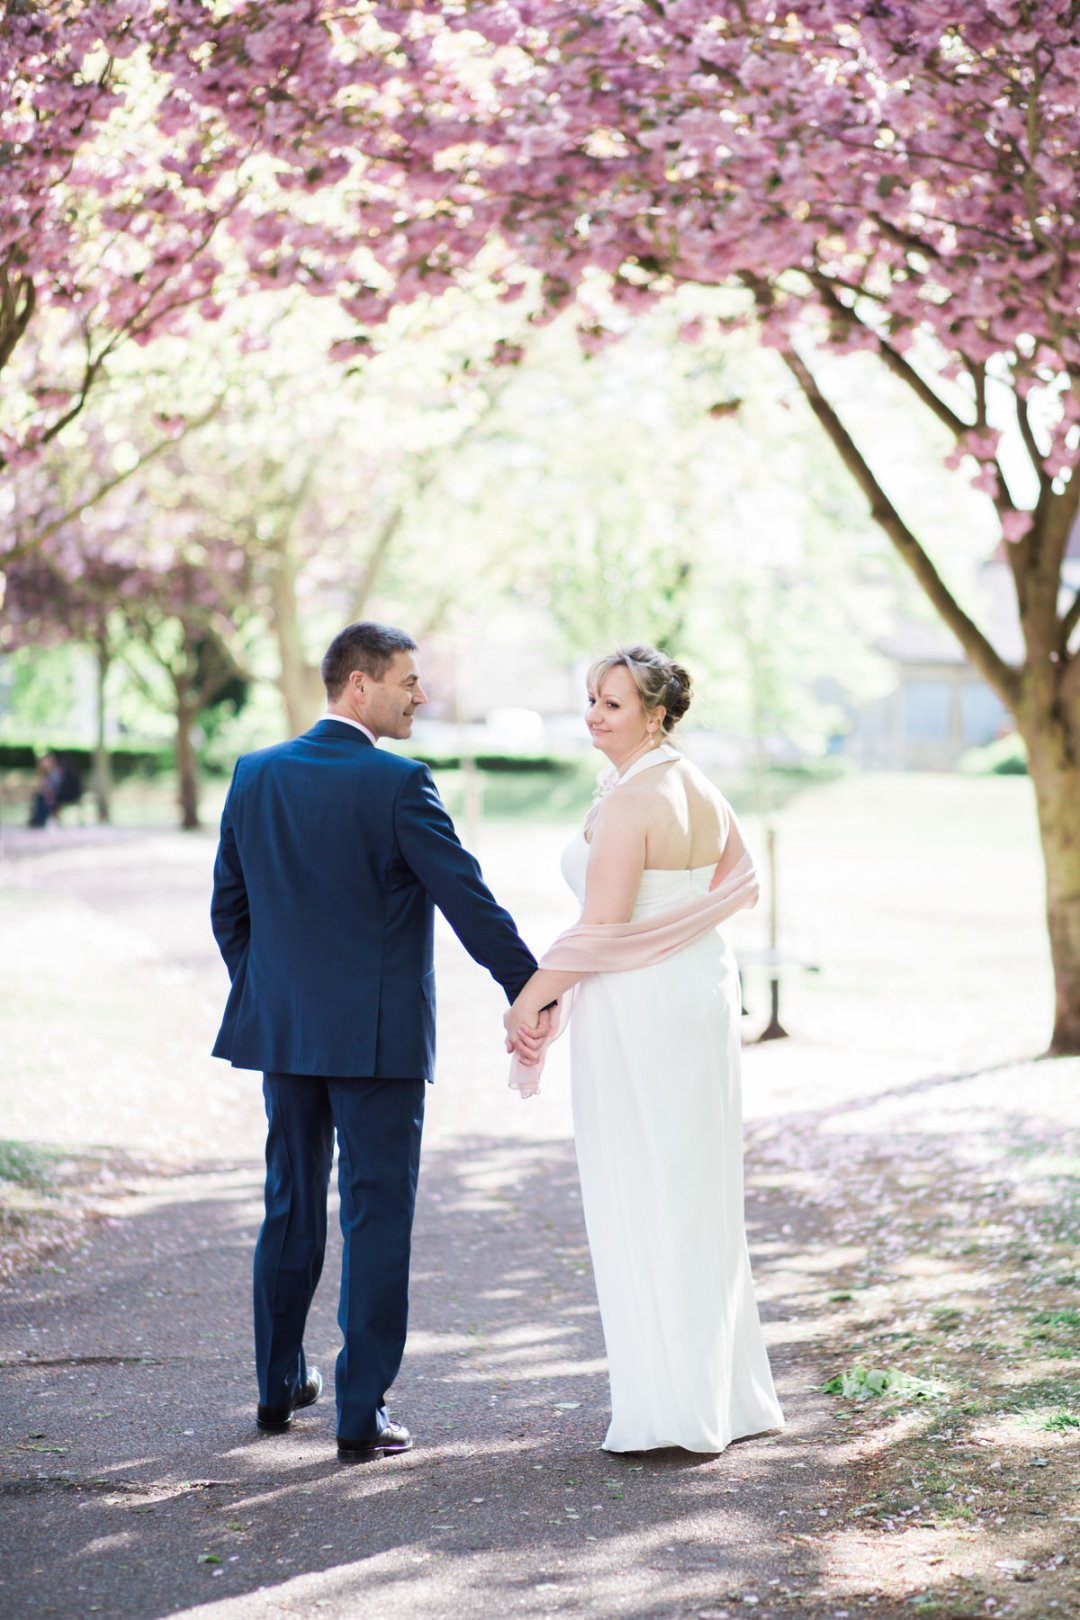 Colchester spring wedding